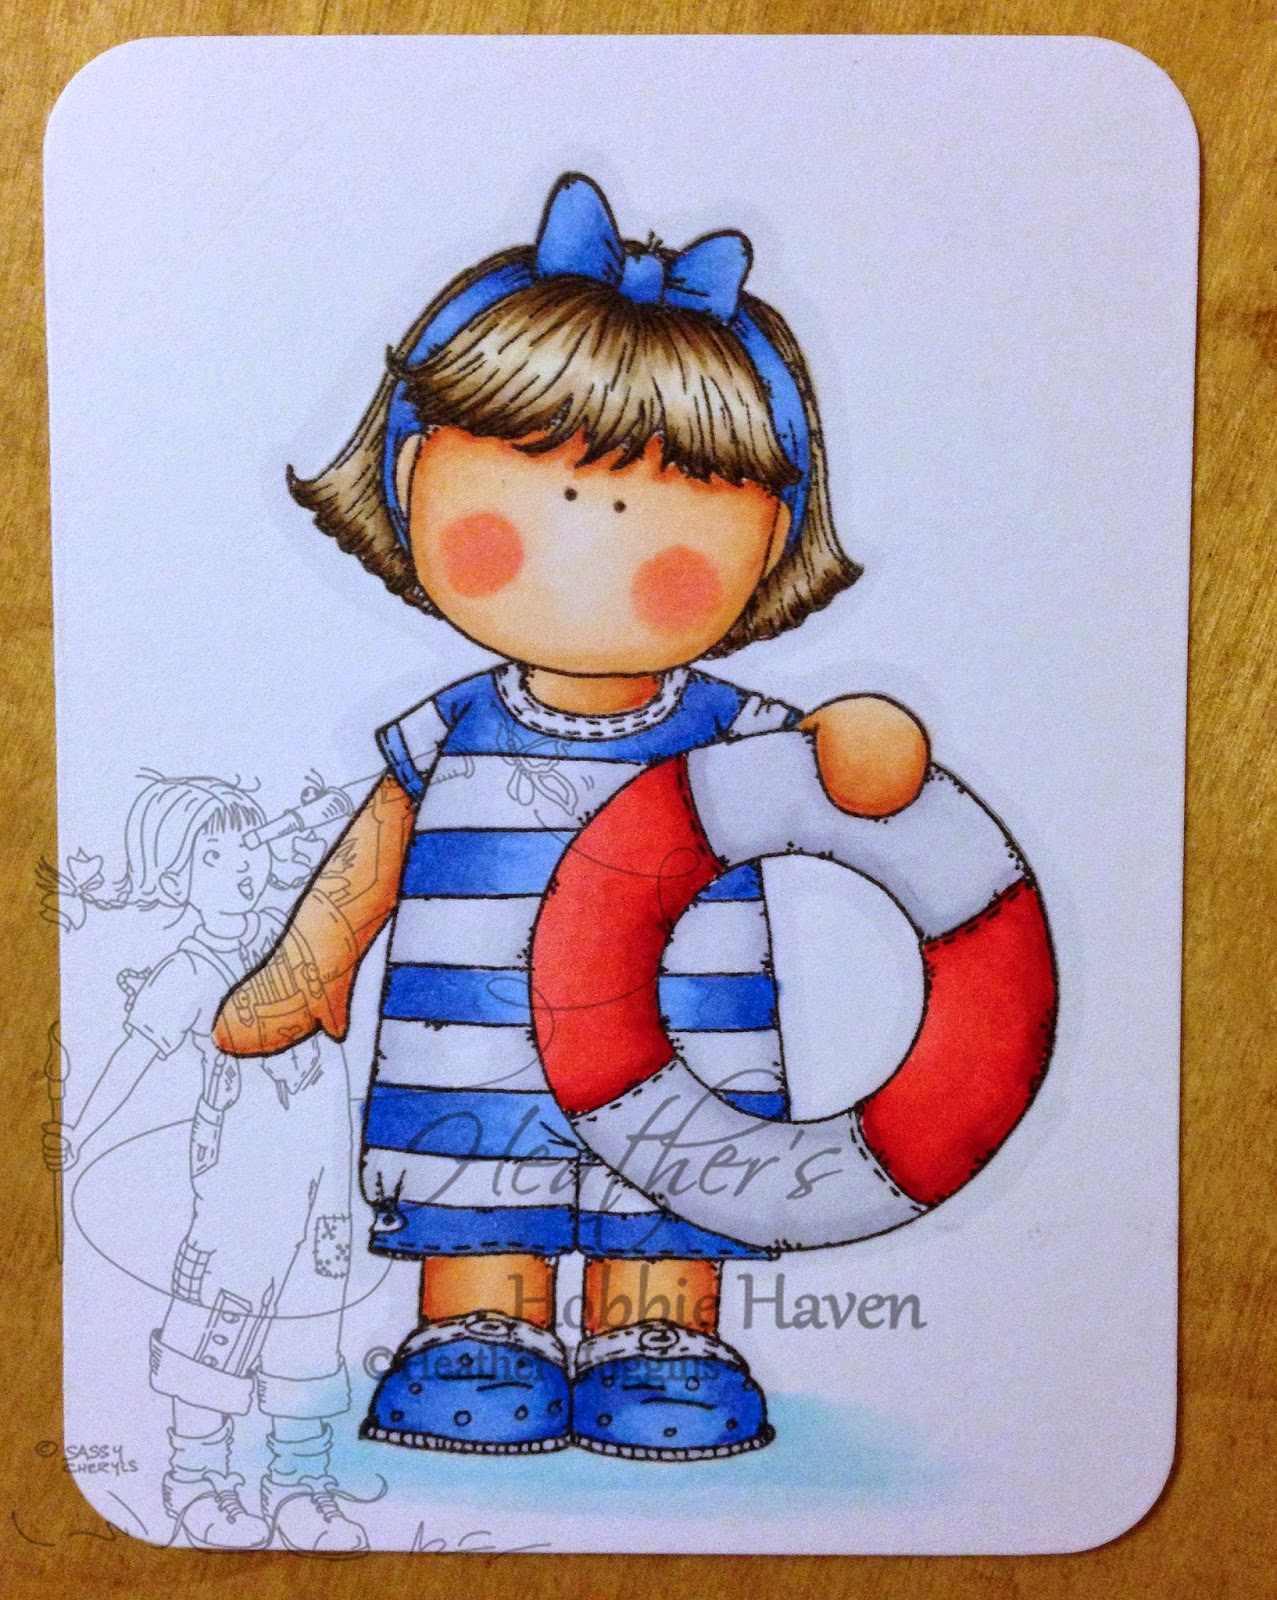 Heather's Hobbie Haven - Colored Project Life Card